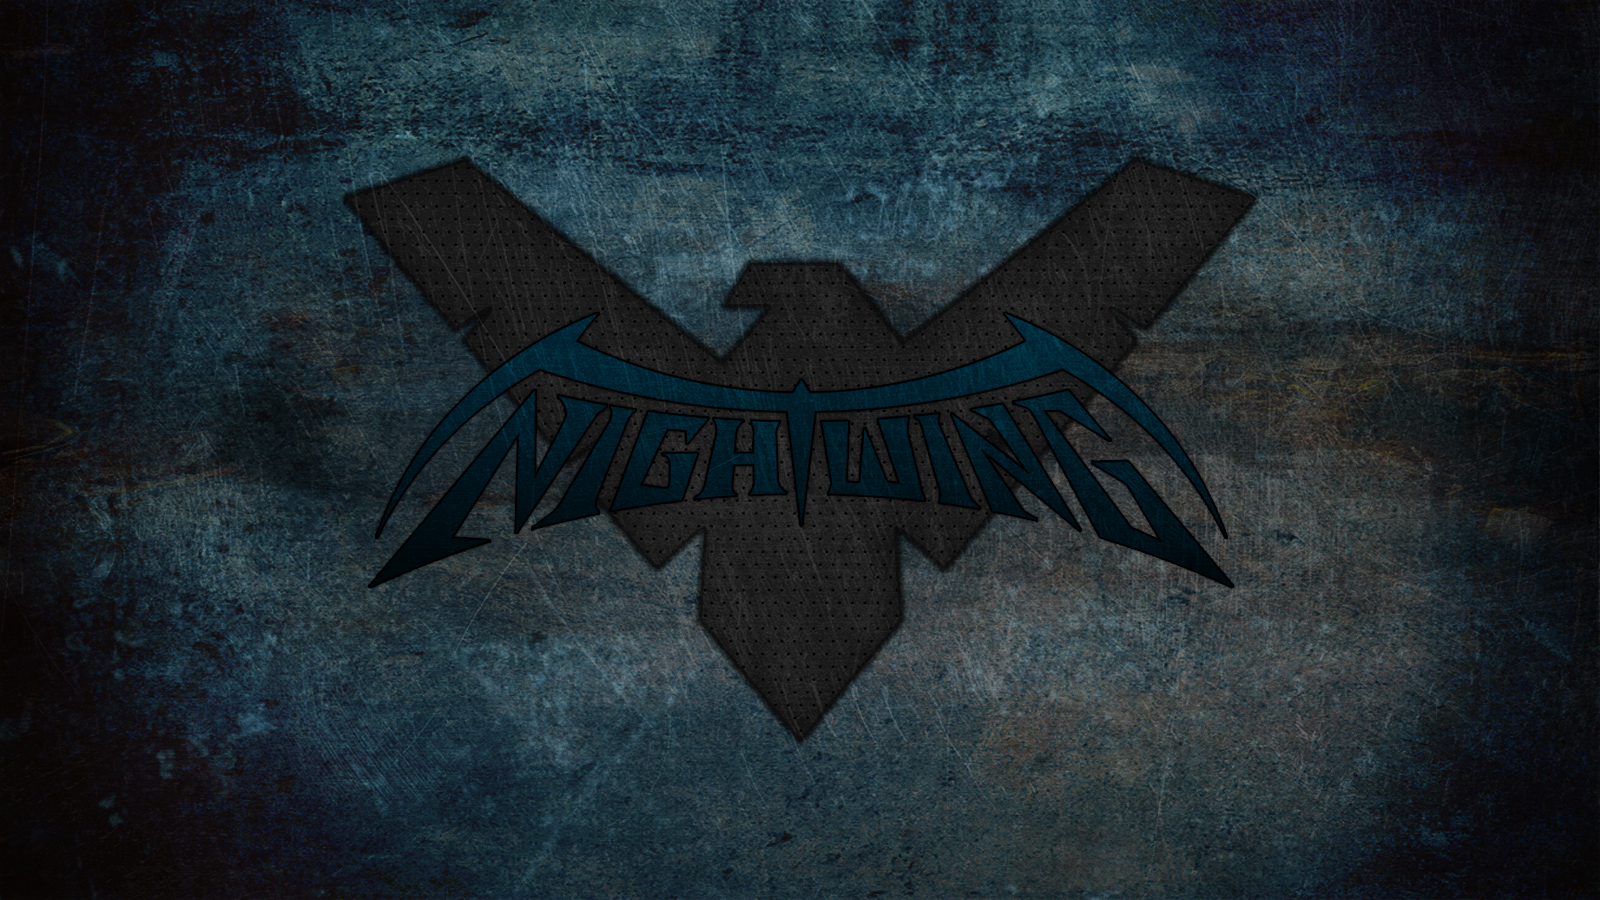 Nightwing Wallpaper And Background Image | 1600x900 | ID ...